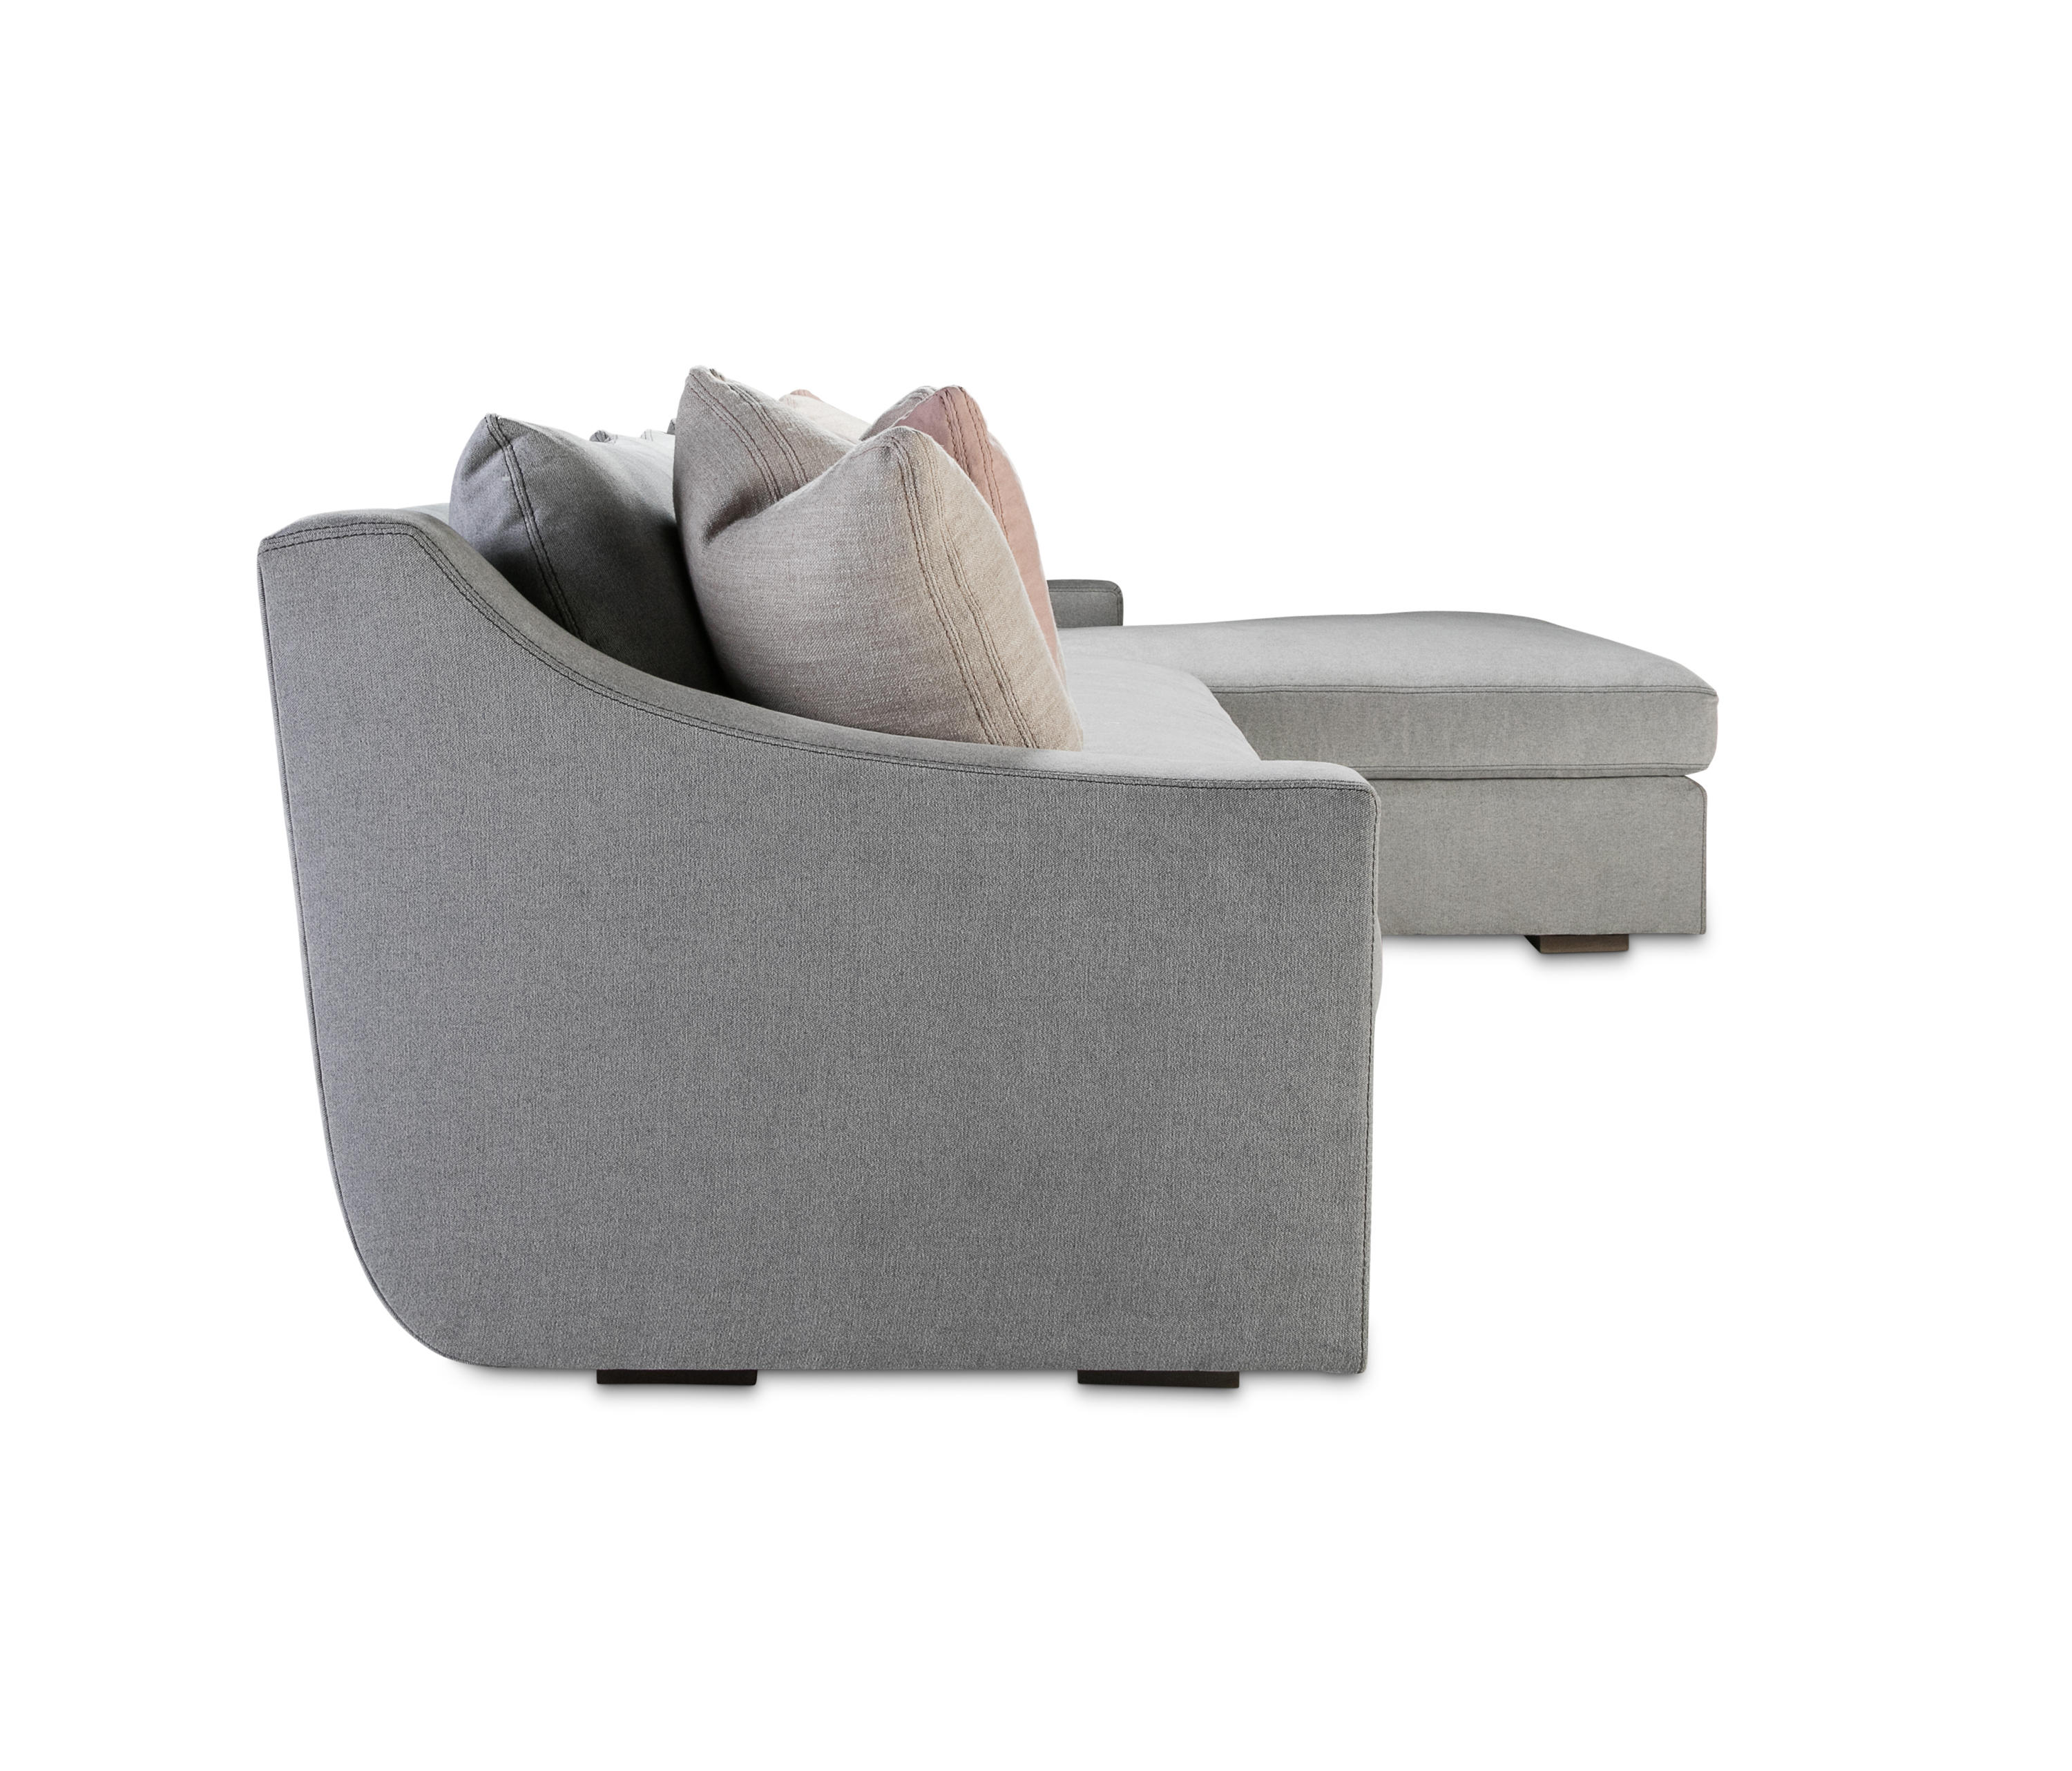 Astonishing Clarence Sofa Designer Furniture Architonic Caraccident5 Cool Chair Designs And Ideas Caraccident5Info